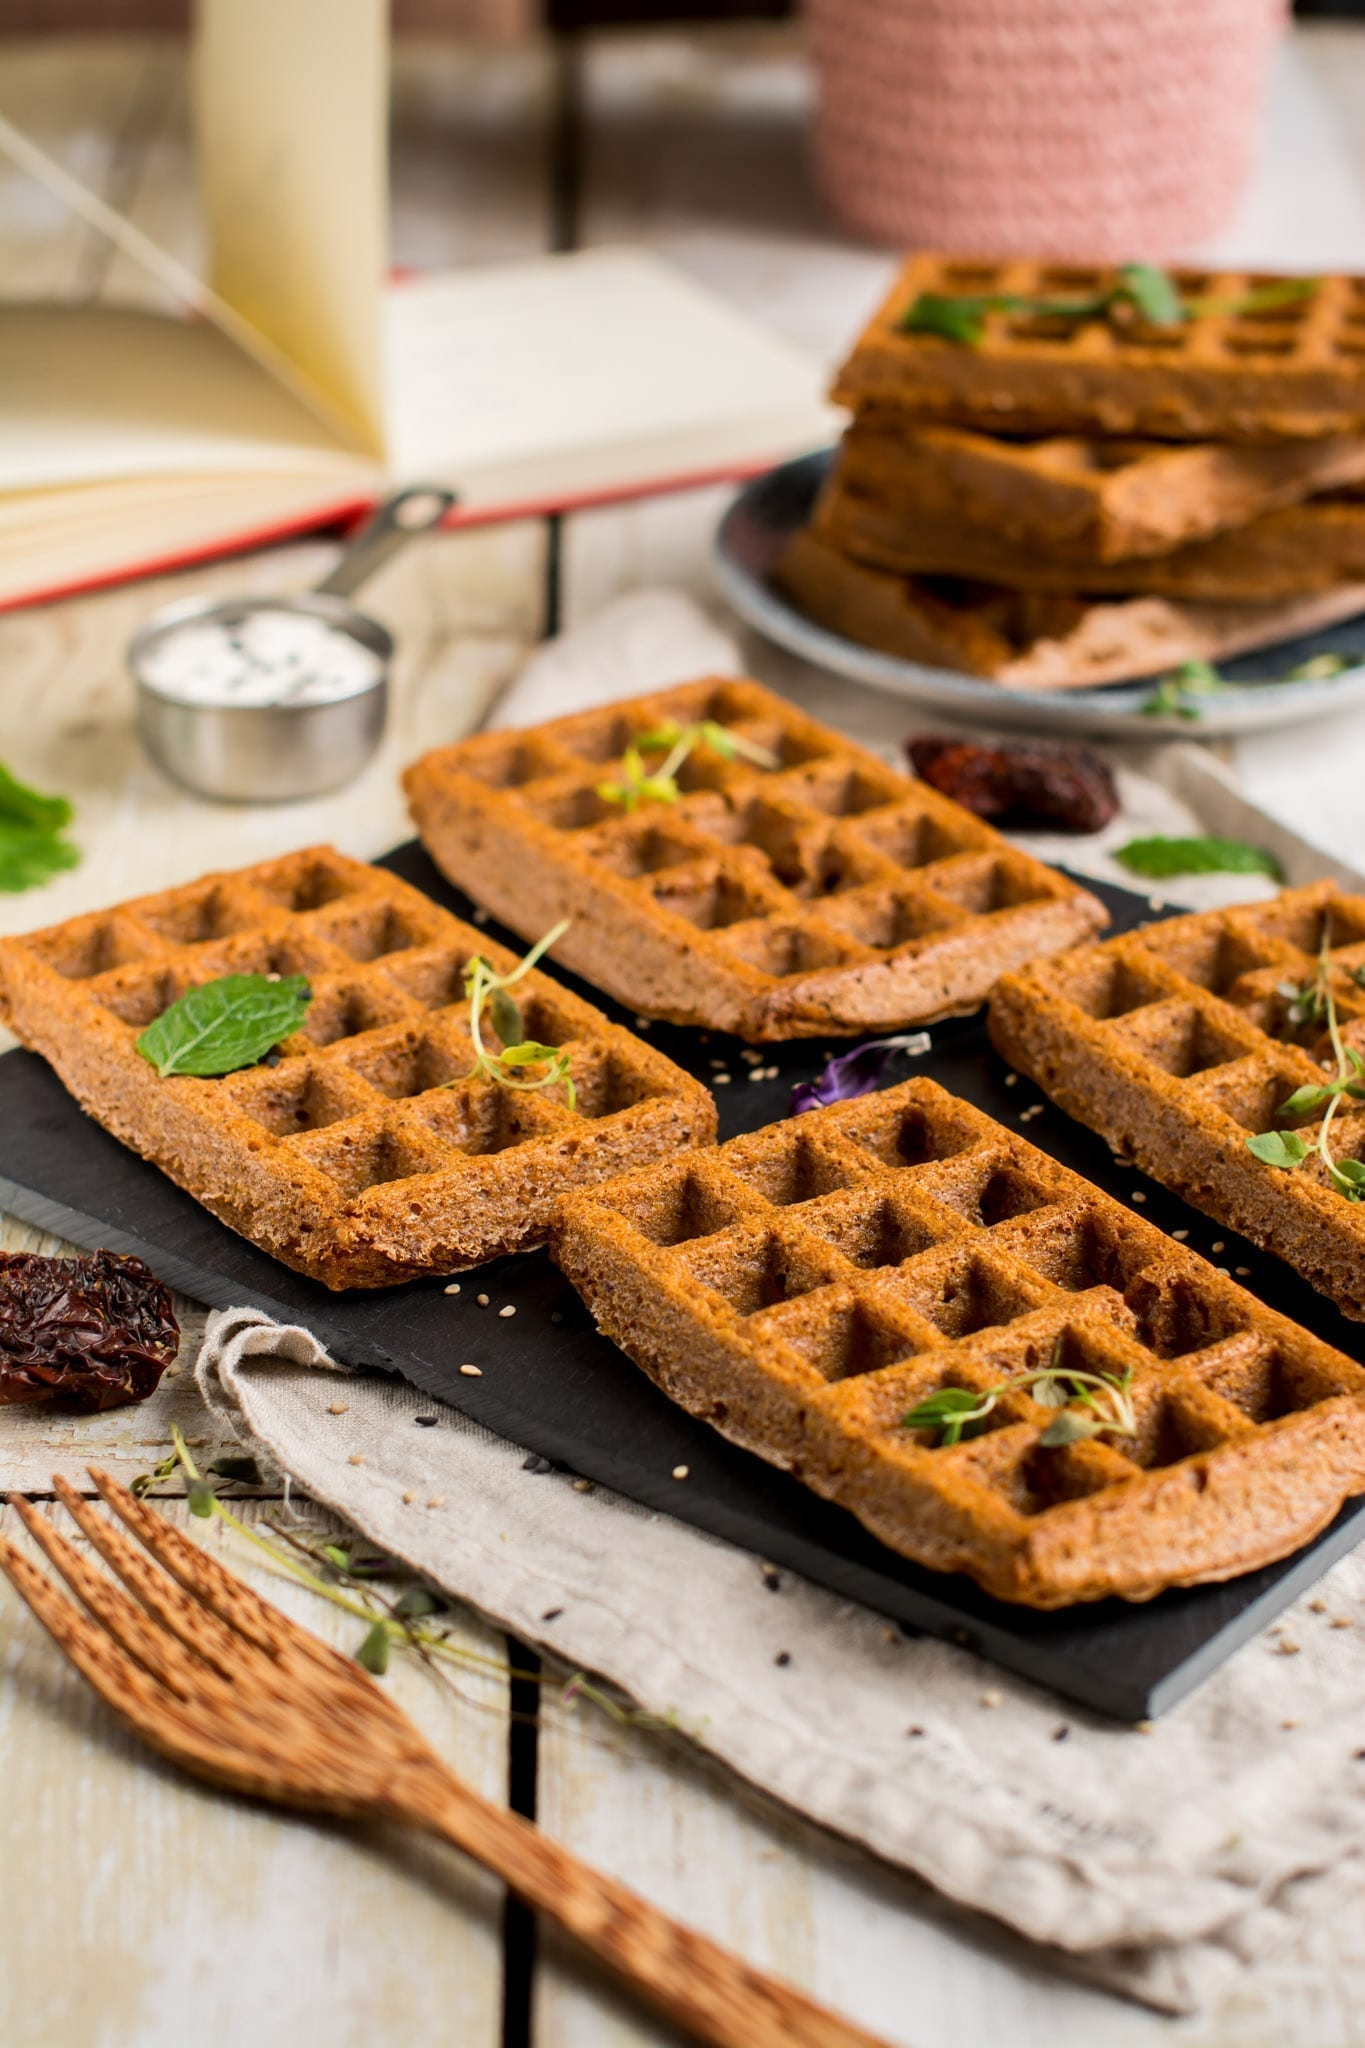 Vegan Gluten-Free Potato Waffles, Pizza Flavored